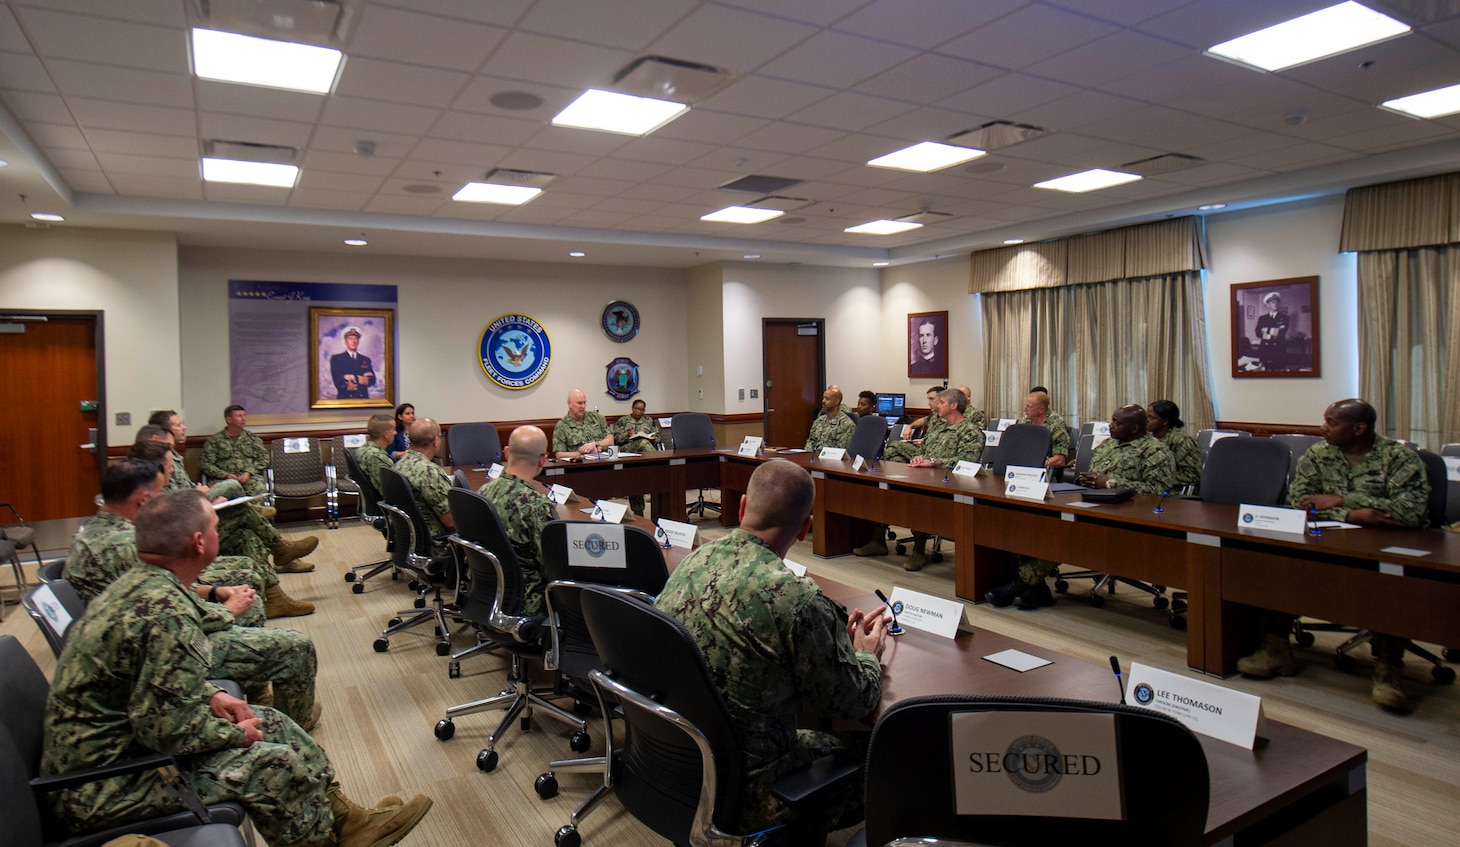 Adm. Christopher W. Grady, commander, U.S. Fleet Forces Command (USFFC), center, speaks with 17 command master chief petty officers during a Senior Enlisted Executive Leadership Symposium held at USFFC, June 15 - 17, 2021.